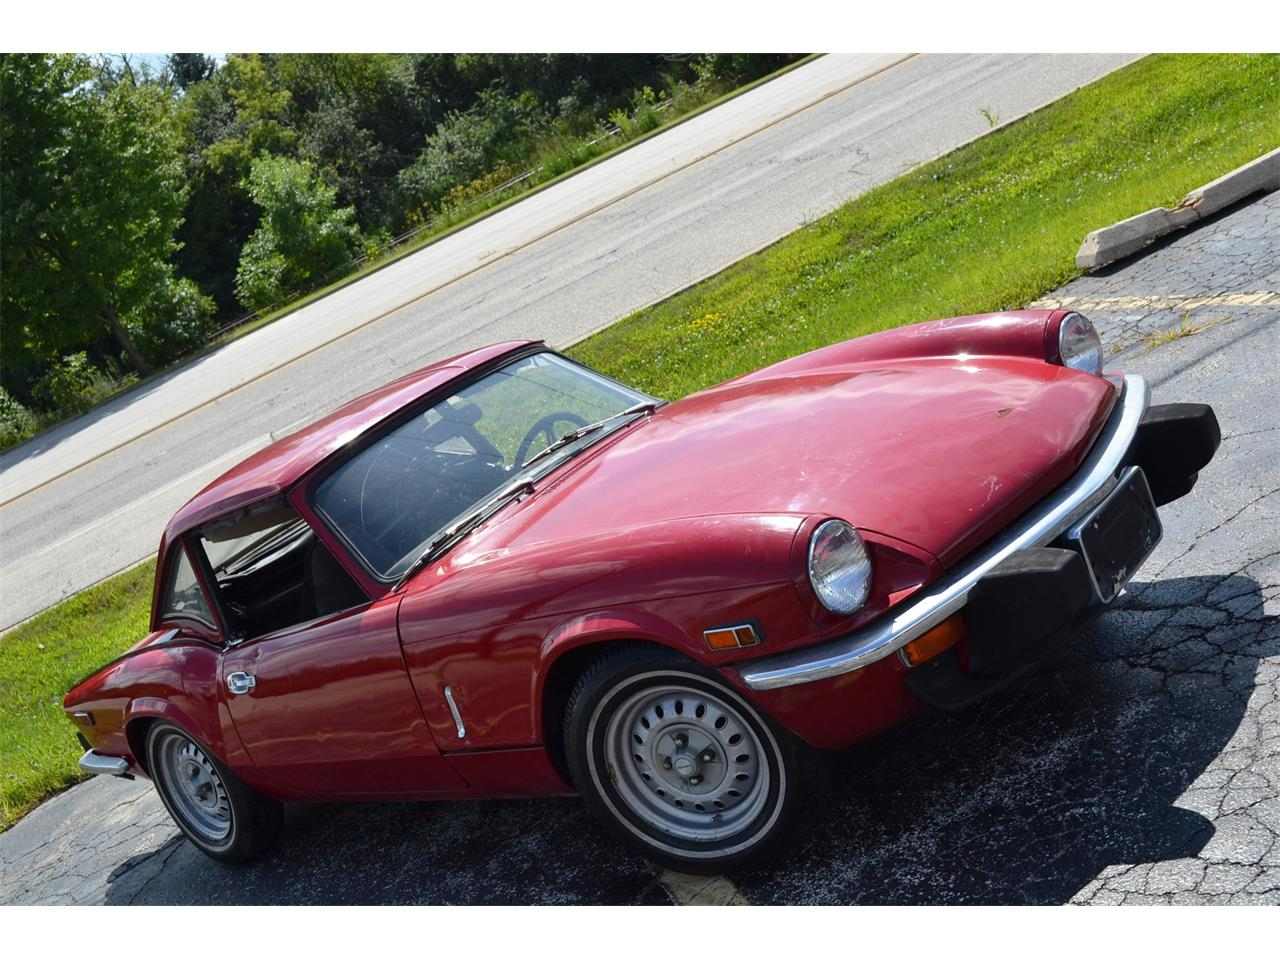 1975 Triumph Spitfire (CC-1247188) for sale in Barrington, Illinois